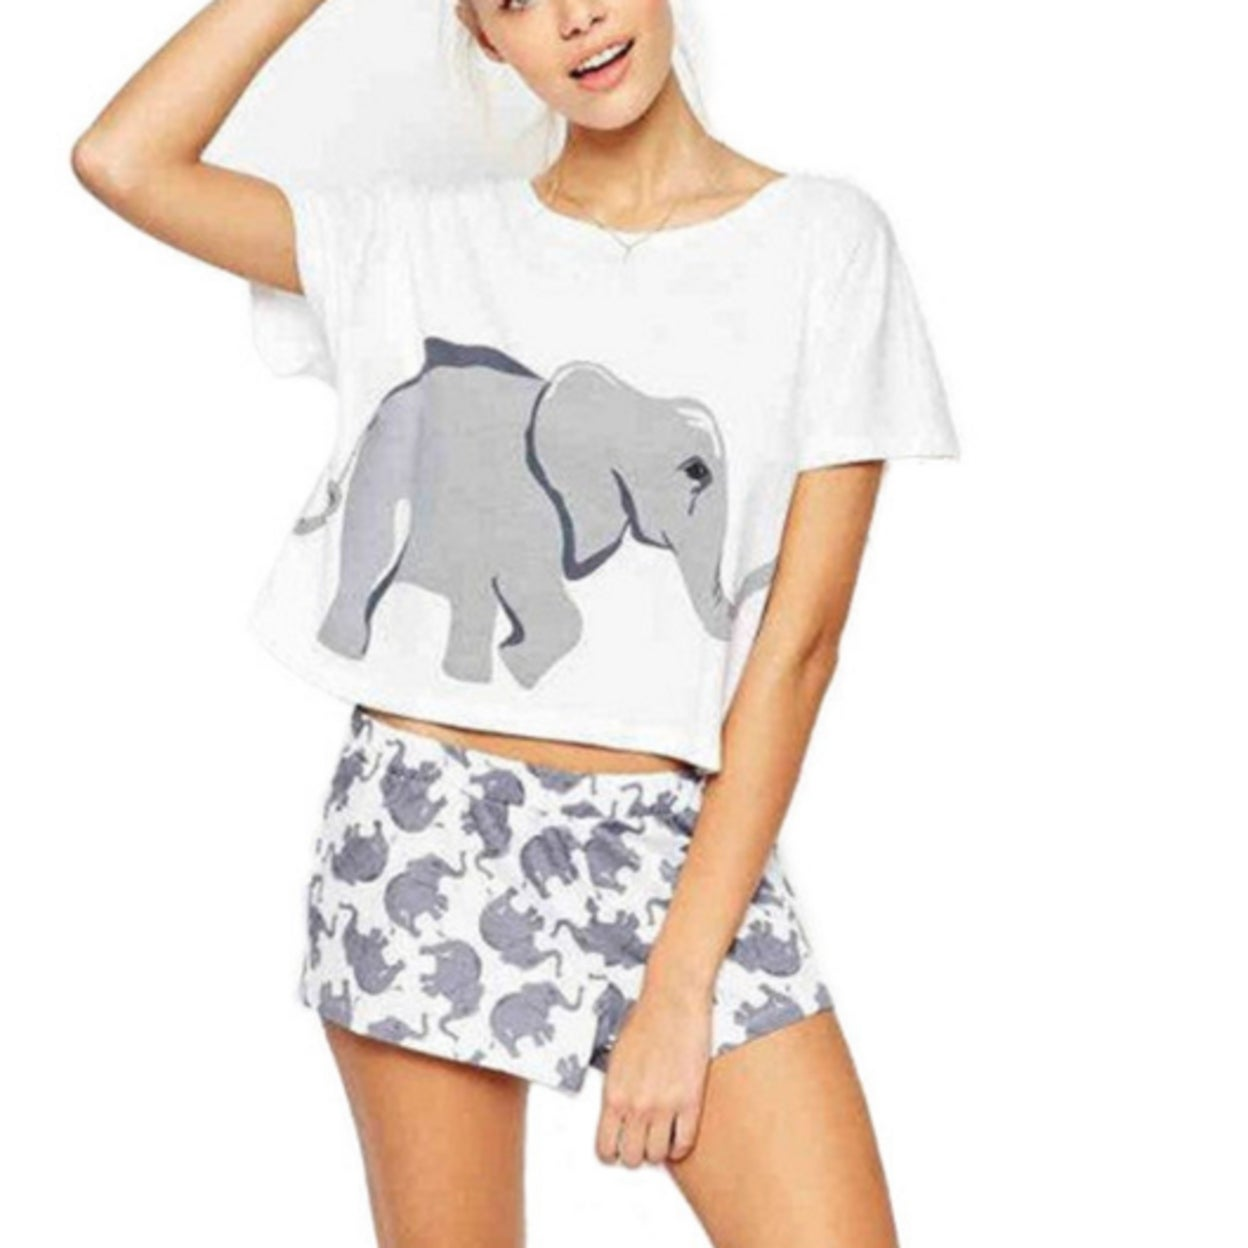 fe57700c5971 Shop Casual Women s Short Sleeve Elephant Print T Shirt - Free ...